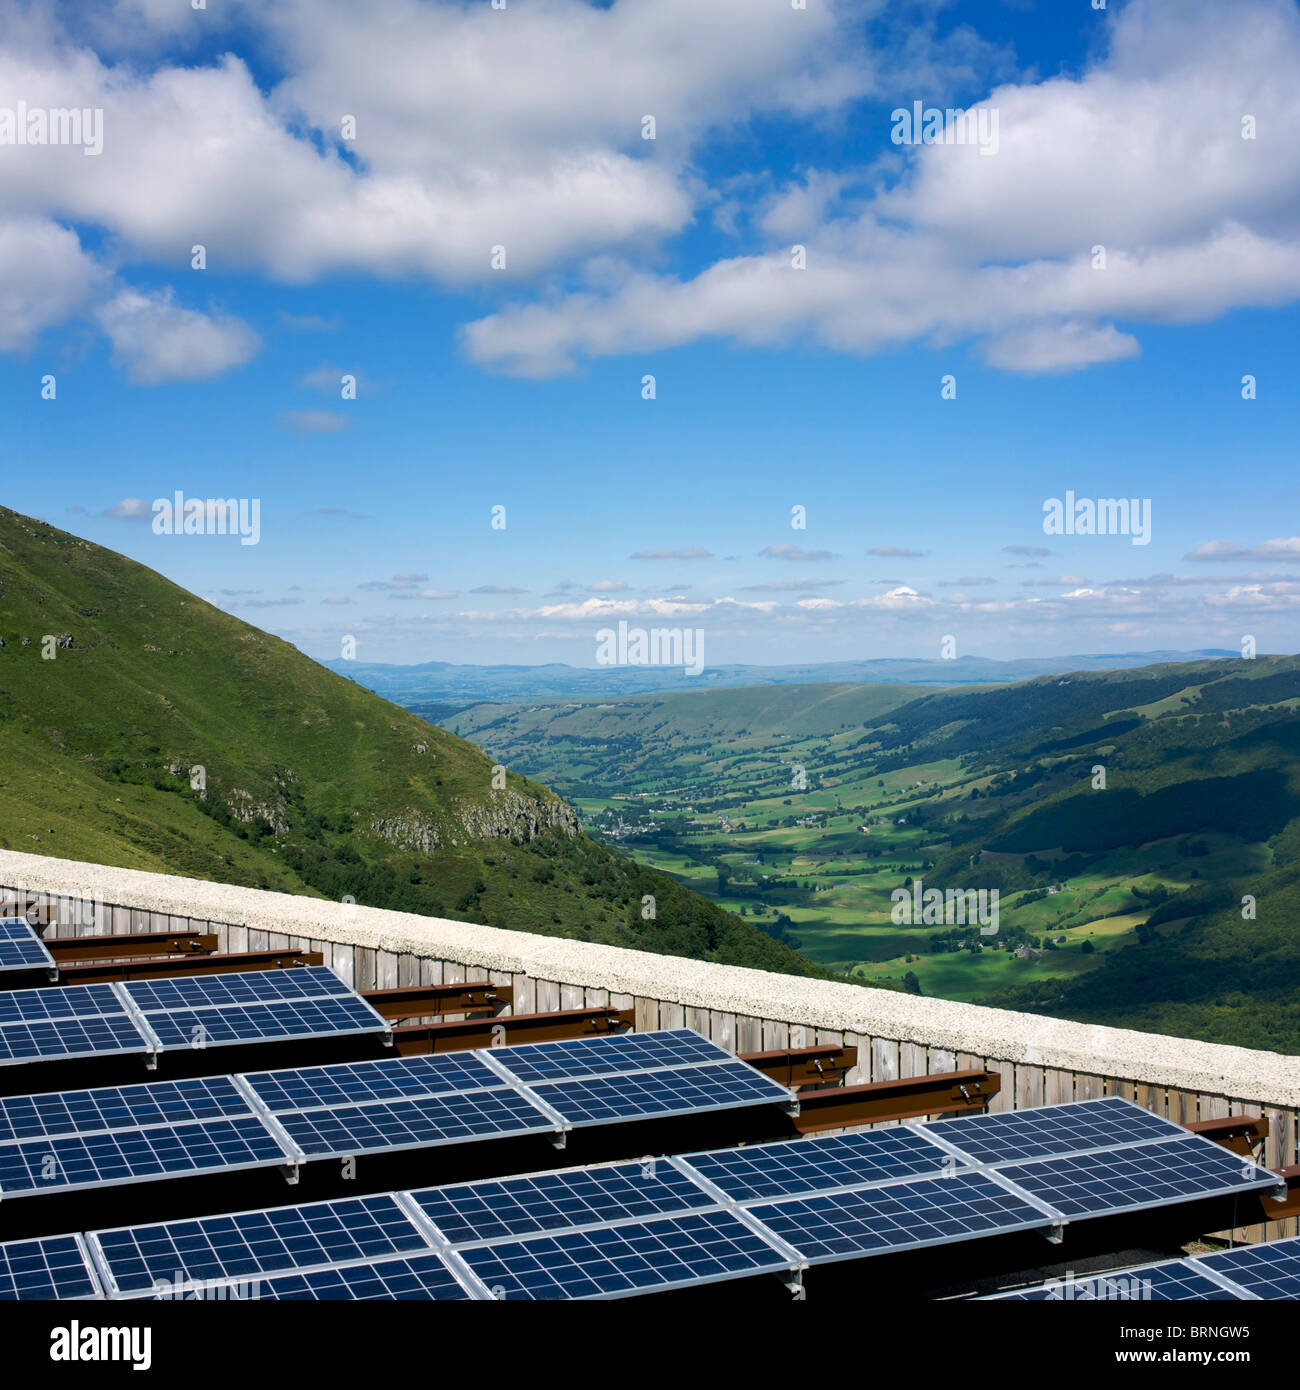 Solar panels at a solar farm with photovoltaic array in the countryside - Stock Image